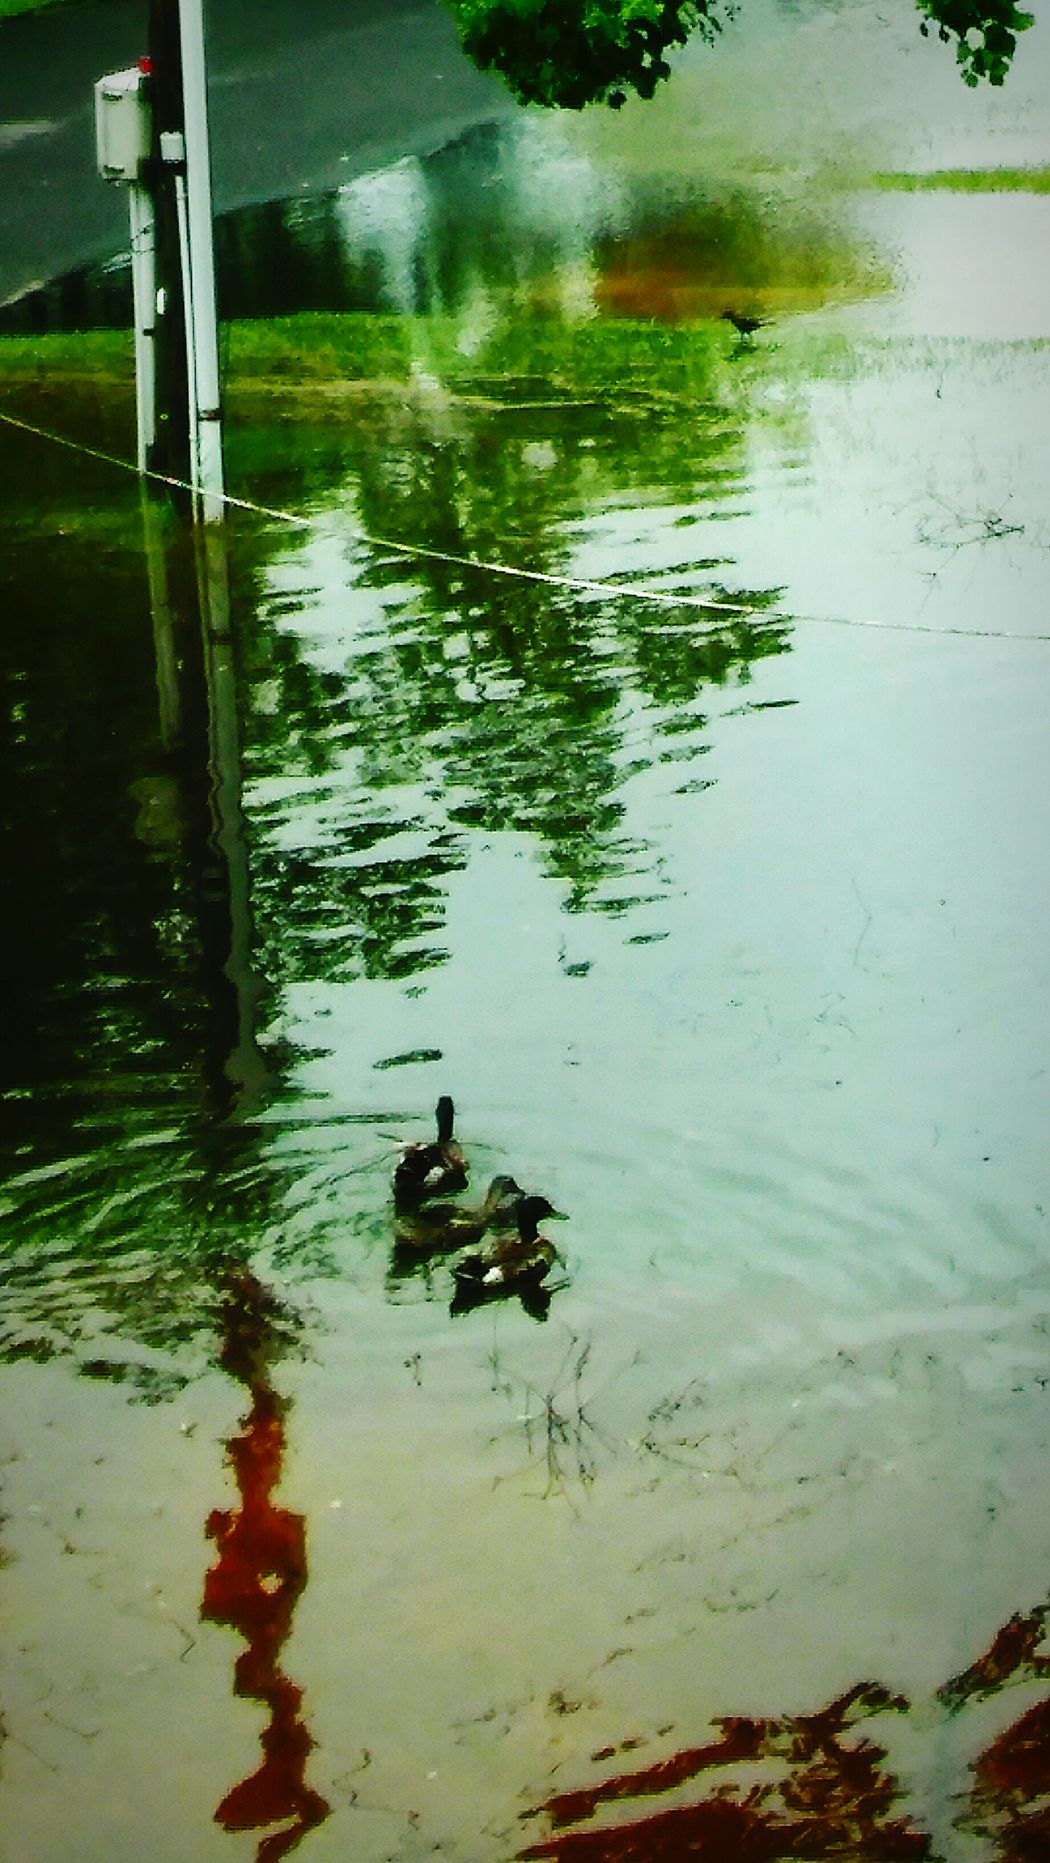 LocalDuck'sSwimmingInTheDriveWay Water Swimming Animals In The Wild Animal Wildlife Animal Themes No People Lake Outdoors Peaceful Moment Reflections And Shadows Freshness Eye4photography  EyeEm Best Shots - Nature EyeEm Nature Lover TropicalstormCindy WasInAWE Nature I💗MallardDuck's💞💞 Reflections Full Frame Shot